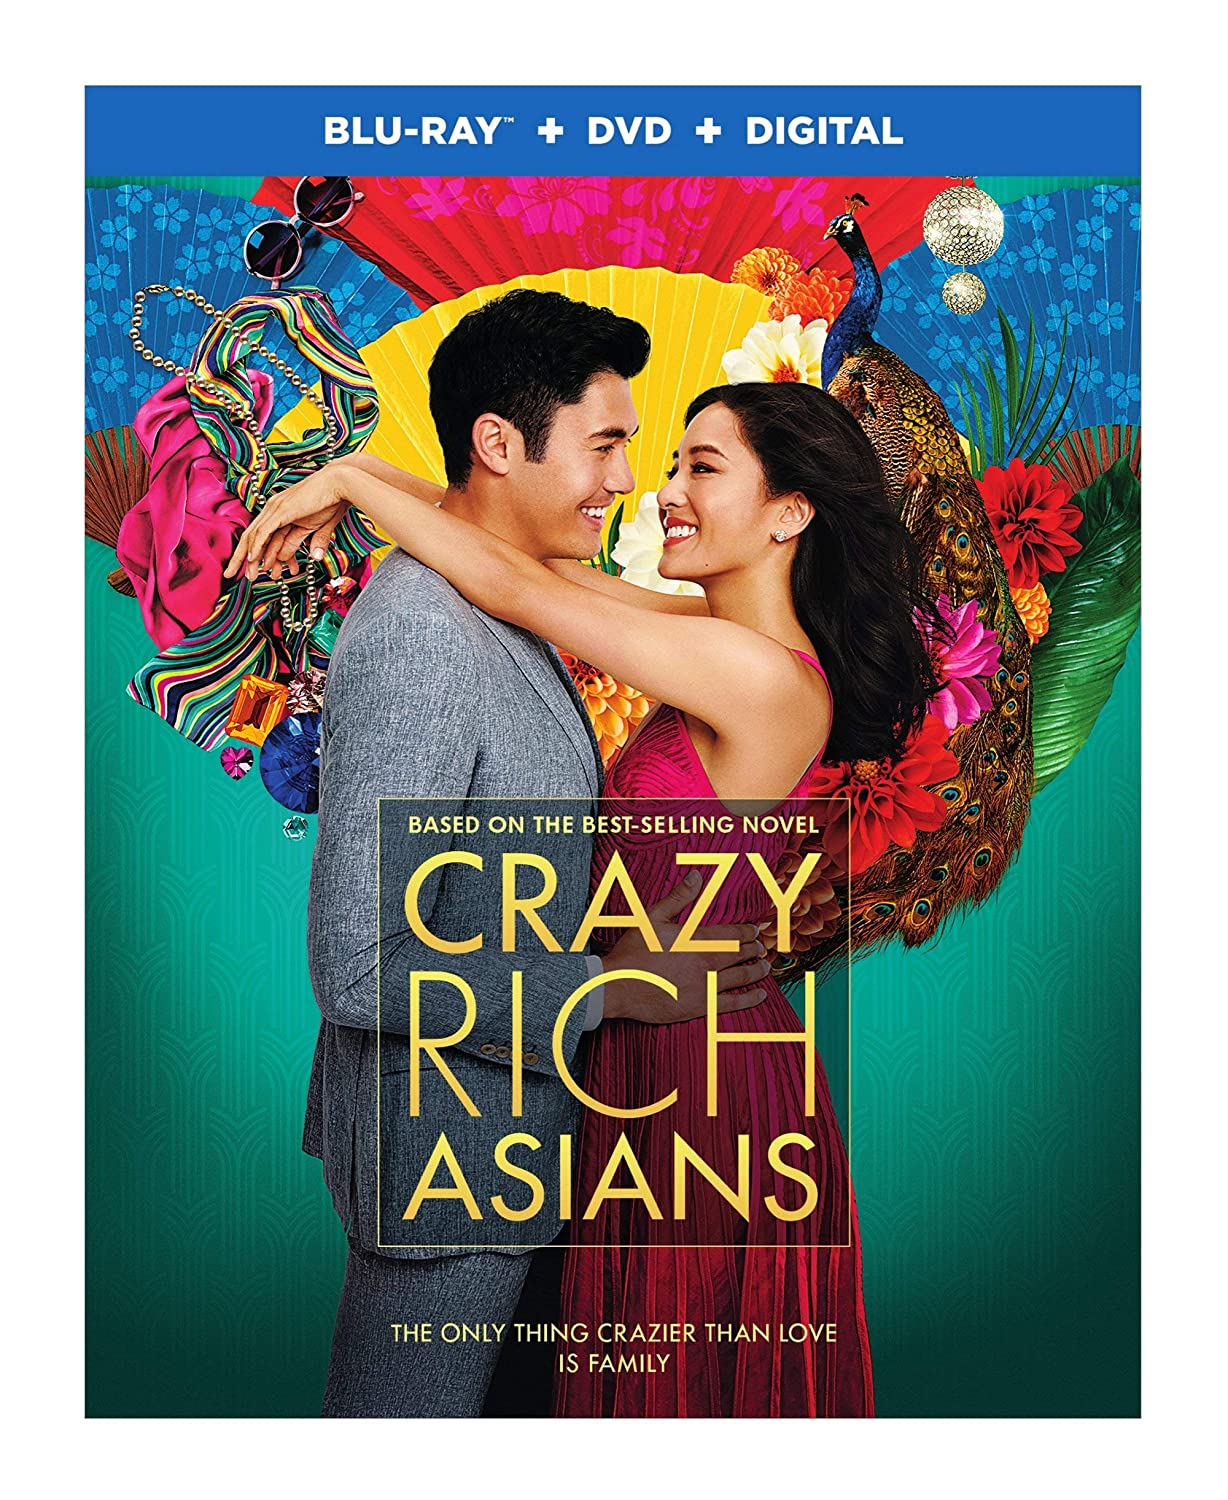 Amazon com: Crazy Rich Asians (Blu-ray + DVD + Digital Combo